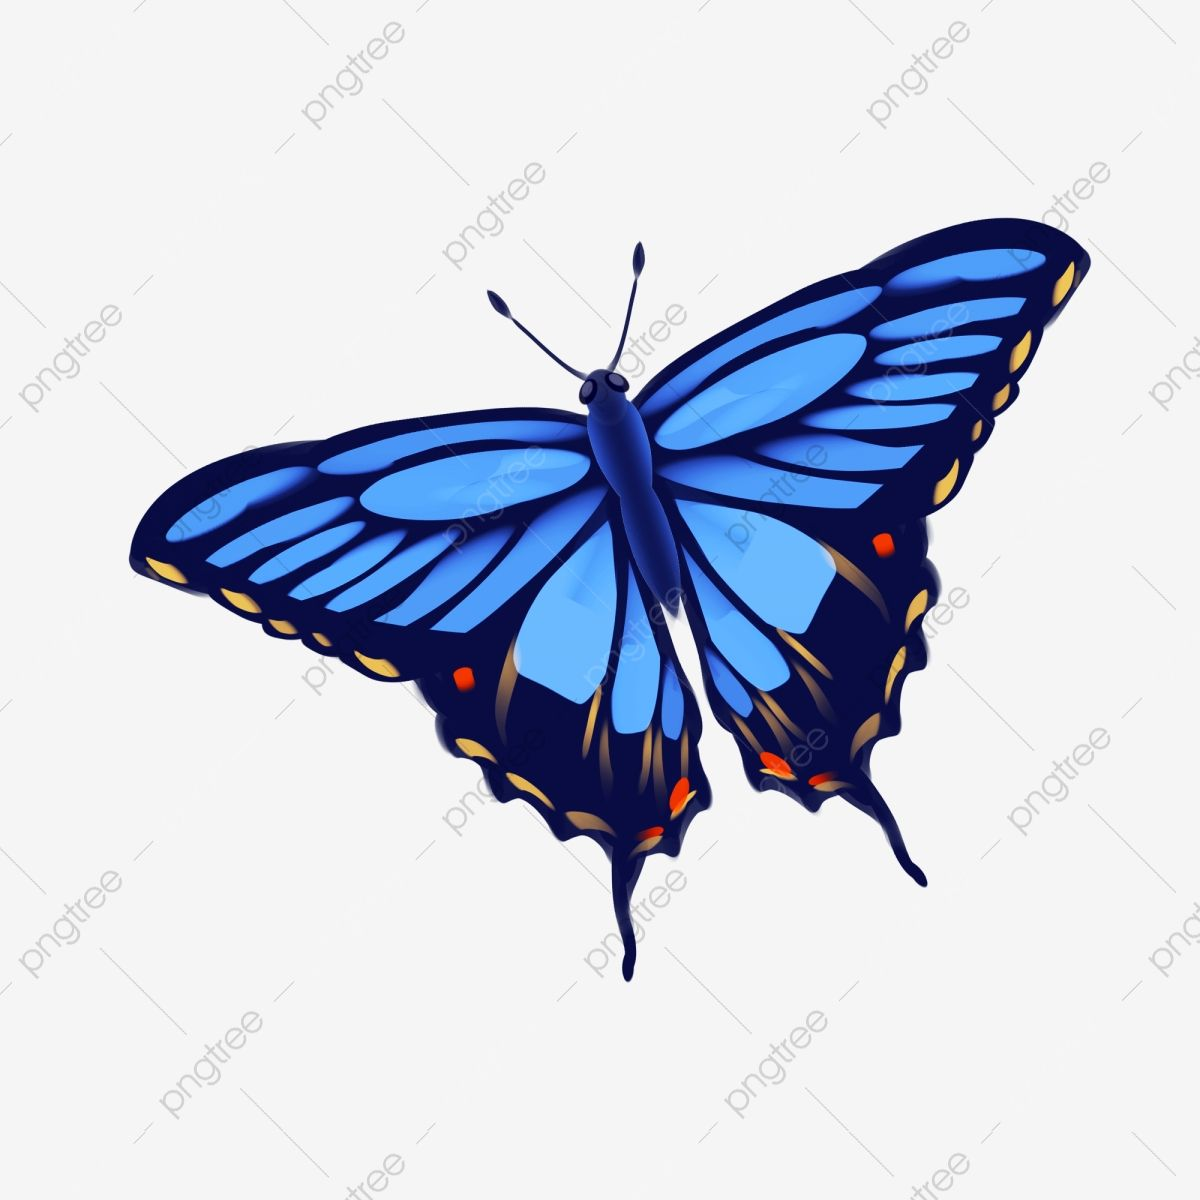 Light Blue Butterfly Illustration Butterfly Clipart Light Blue Butterfly Flying Butterfly Png Transparent Clipart Image And Psd File For Free Download In 2021 Butterfly Illustration Blue Butterfly Cartoon Butterfly